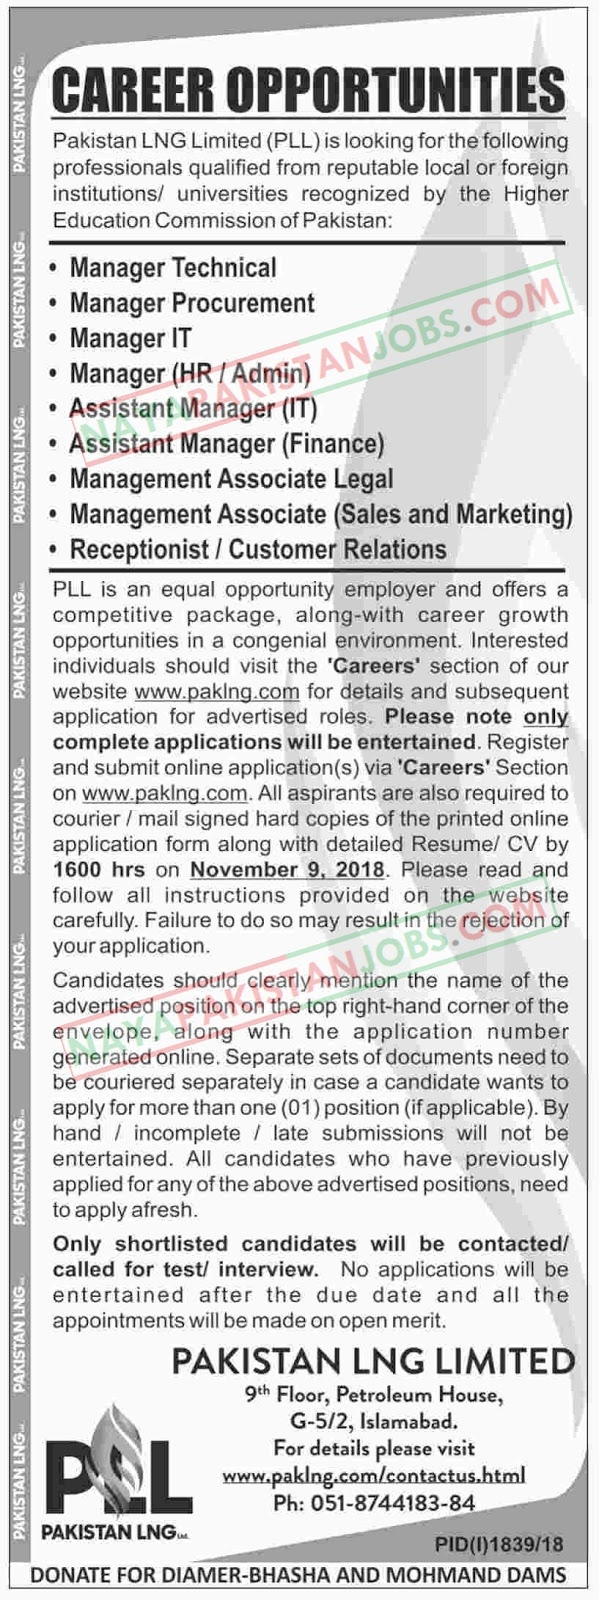 Latest Vacancies Announced in Pakistan LNG Limited 24 October 2018 - Naya Pakistan